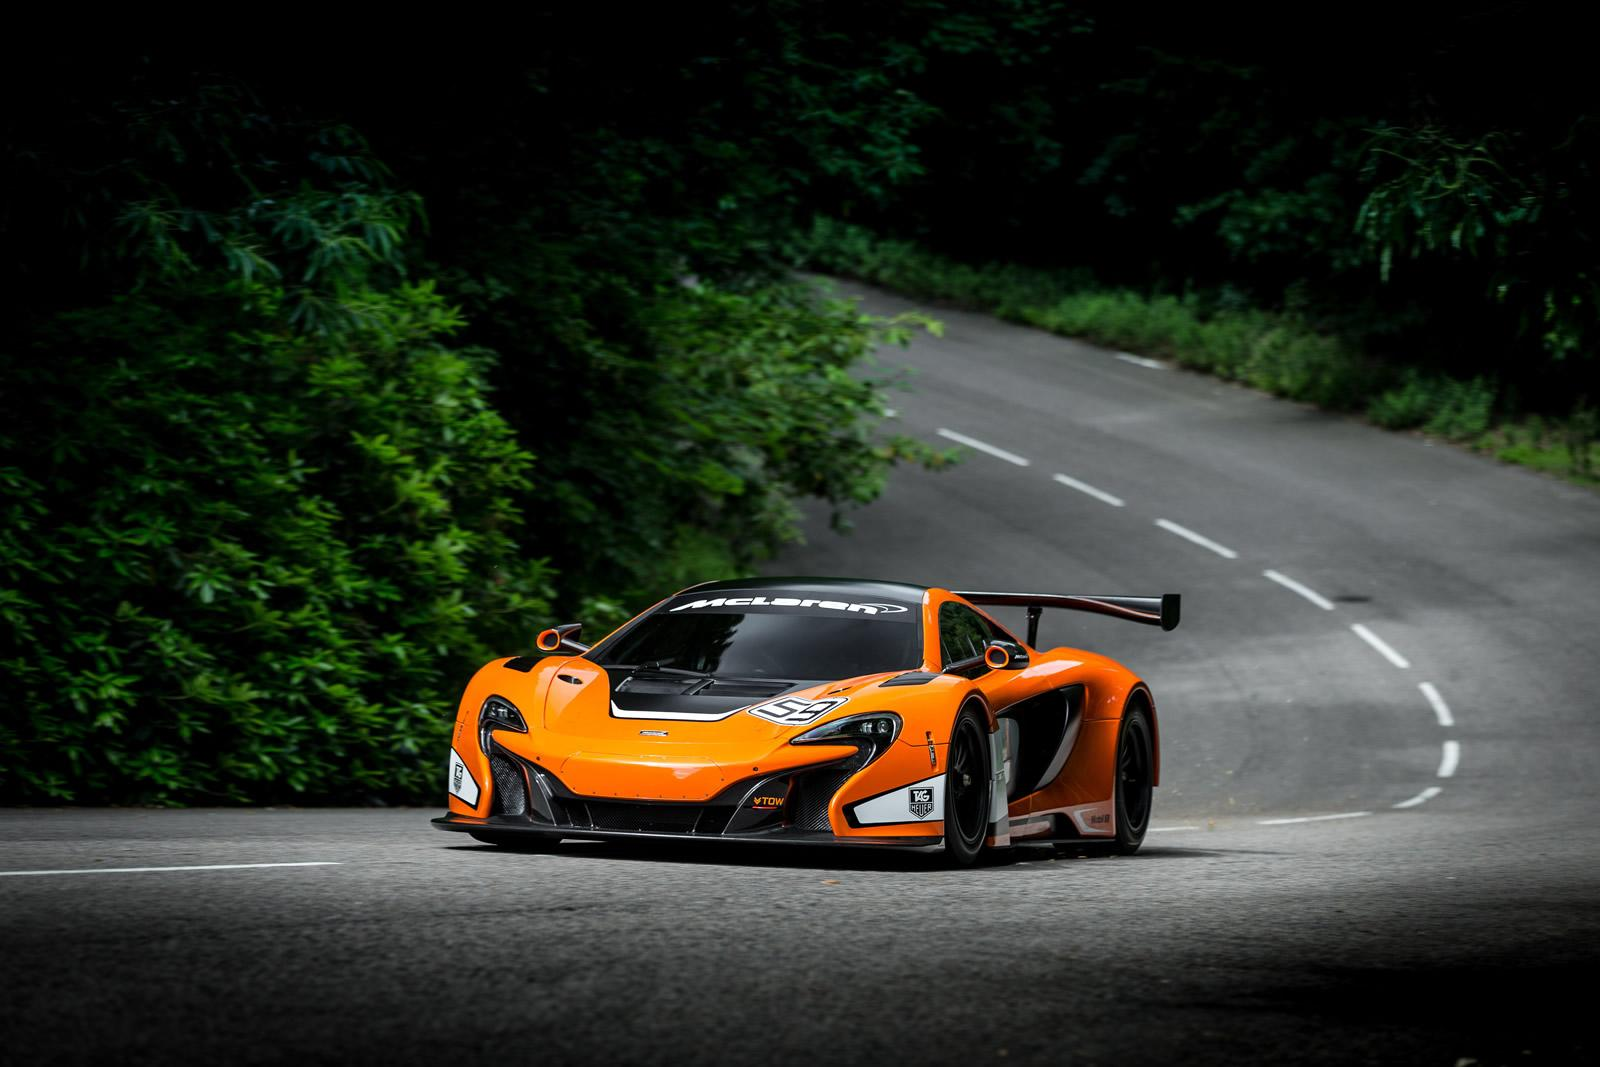 mclaren unveils 650s gt3 race car at the goodwood fos. Black Bedroom Furniture Sets. Home Design Ideas